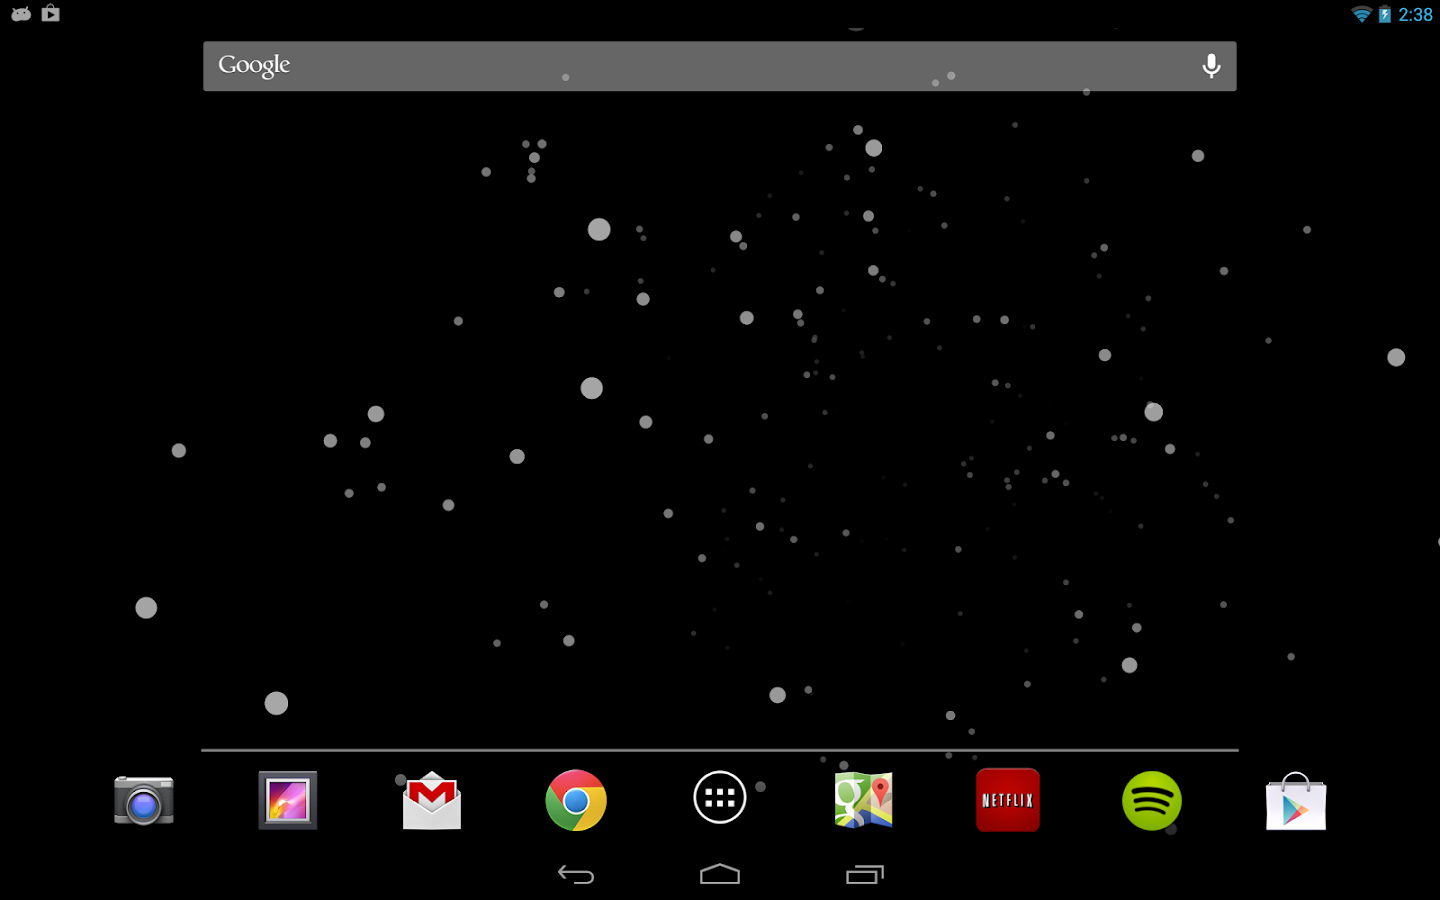 Starfield (Live) Wallpaper - screenshot